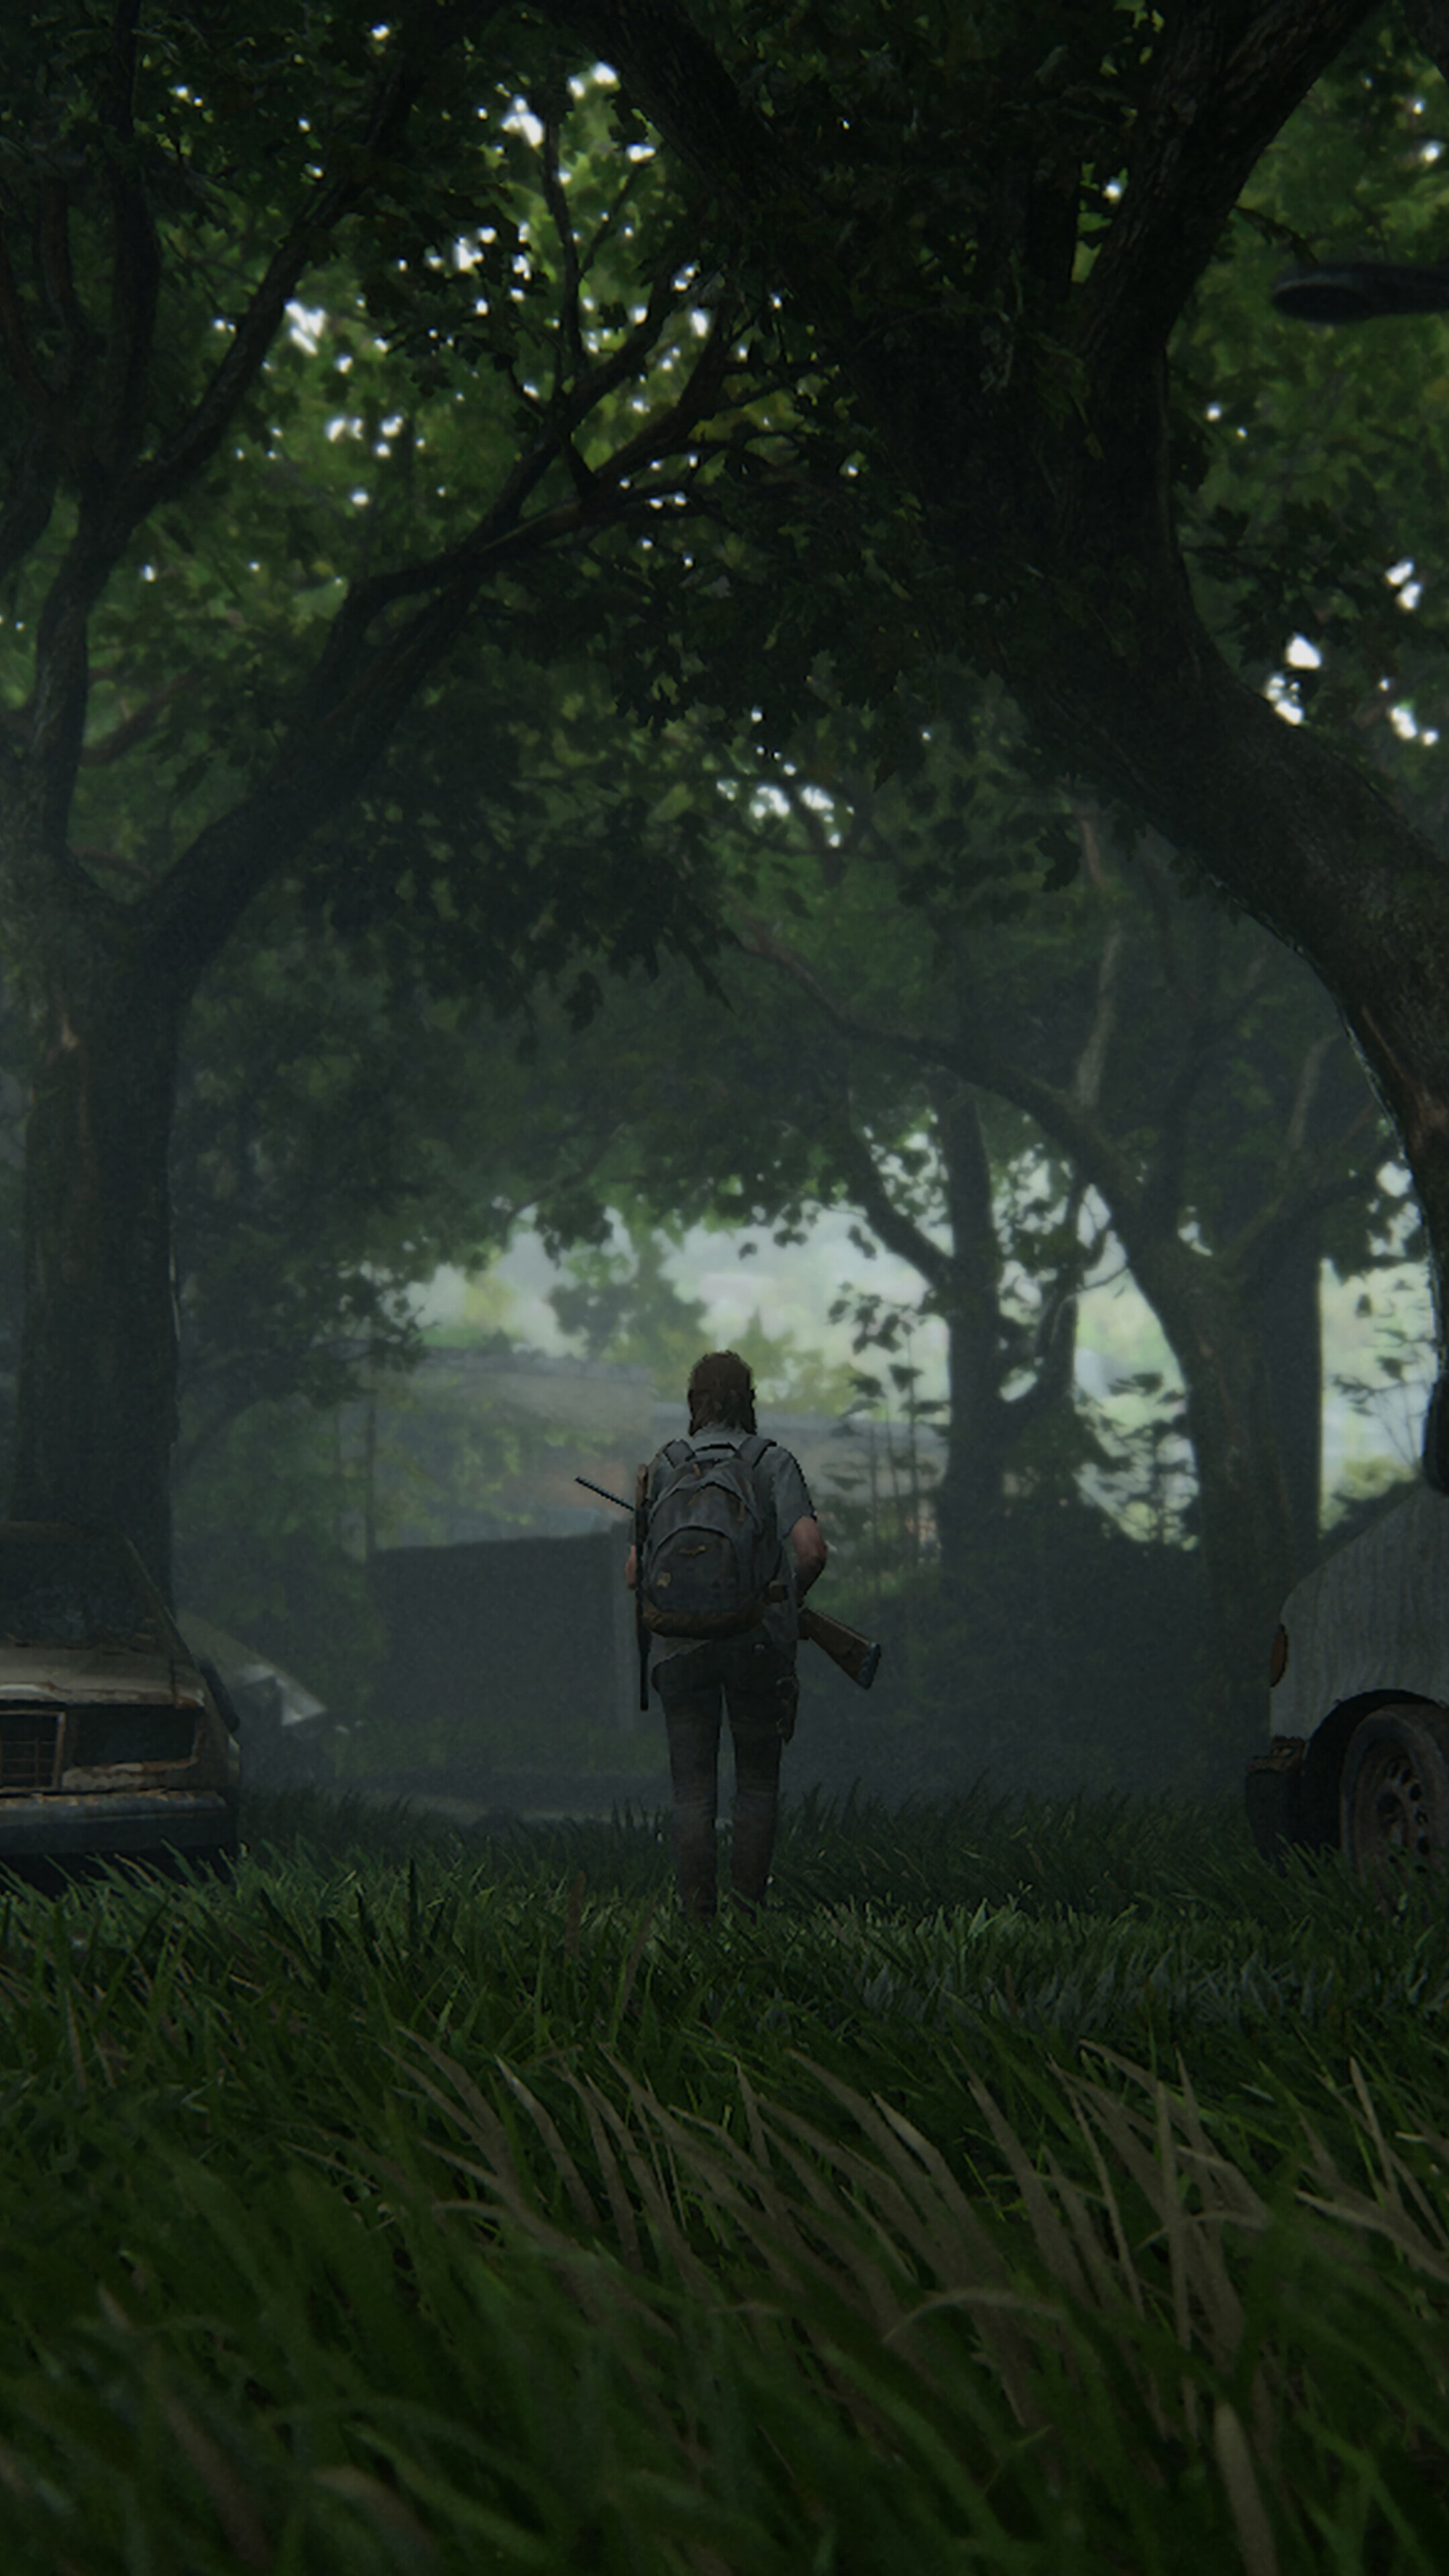 332701 The Last of Us Part 2 Ellie Guitar Iphone 1076s6 HD 2160x3840